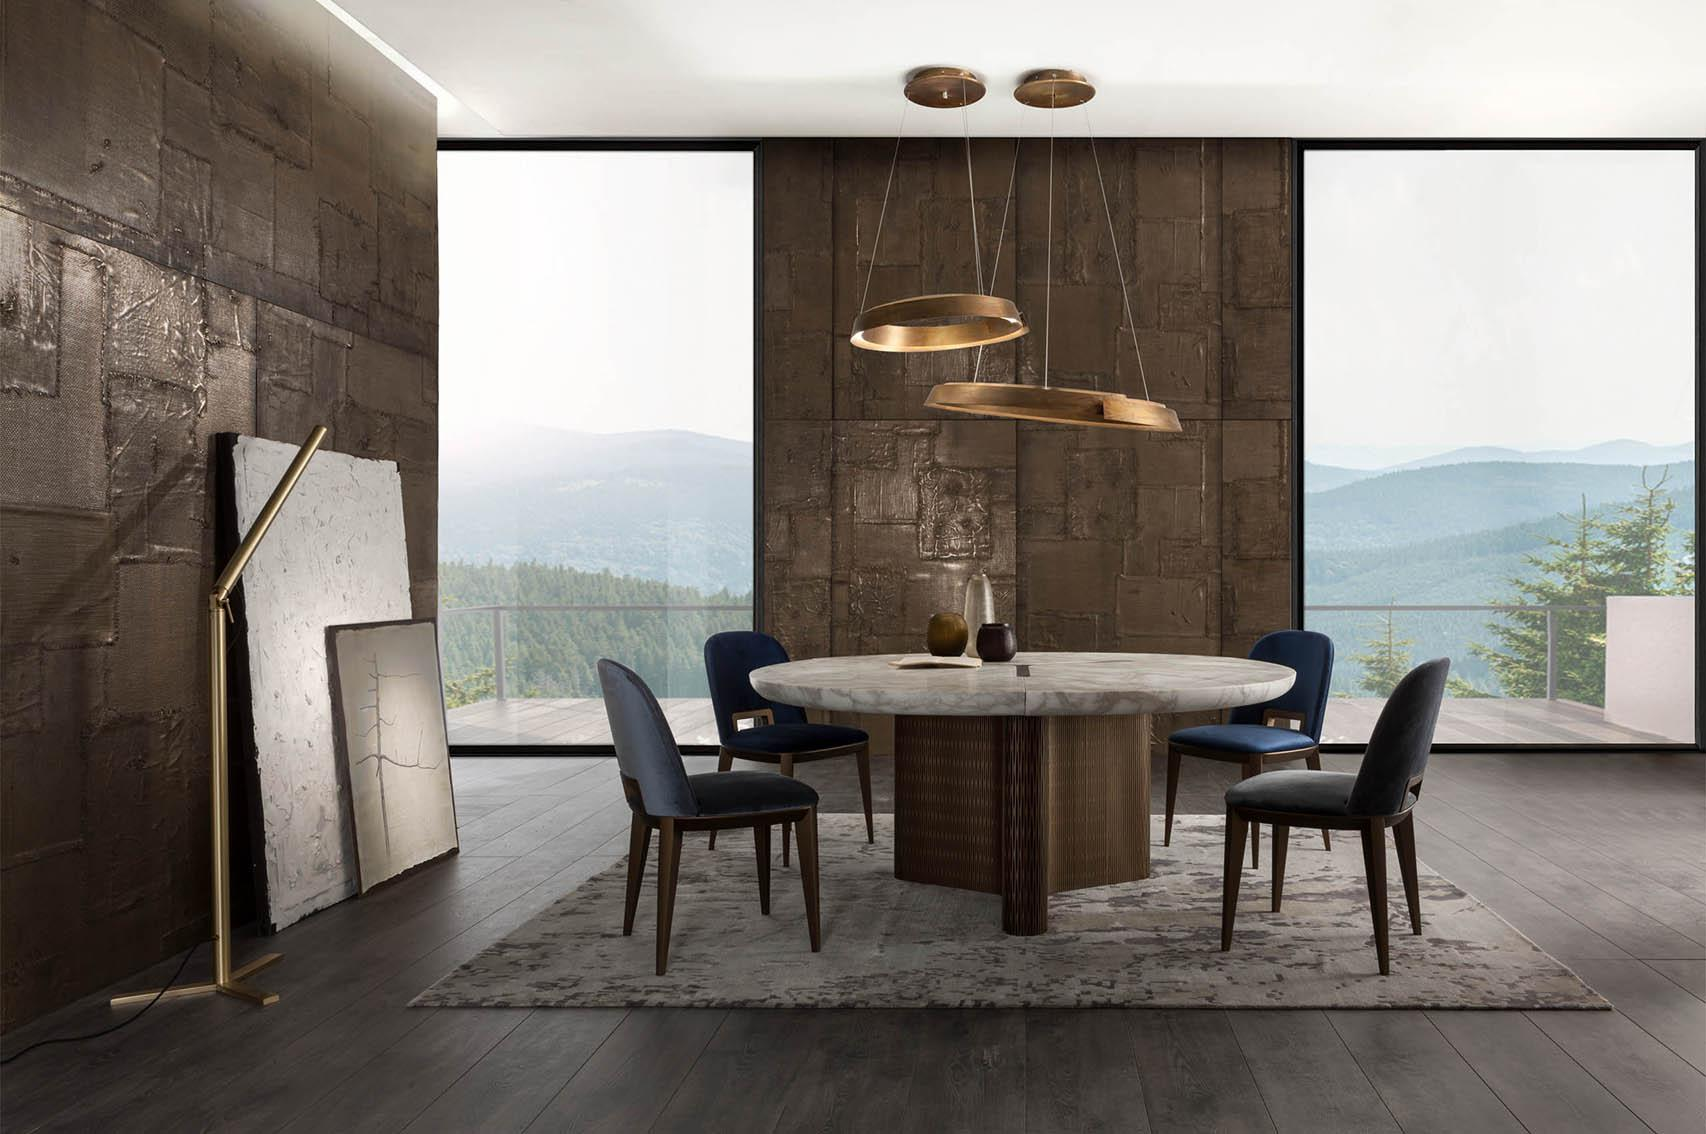 Laurameroni luxury modern made to measure bespoke marble tables for contemporary interior decor and design